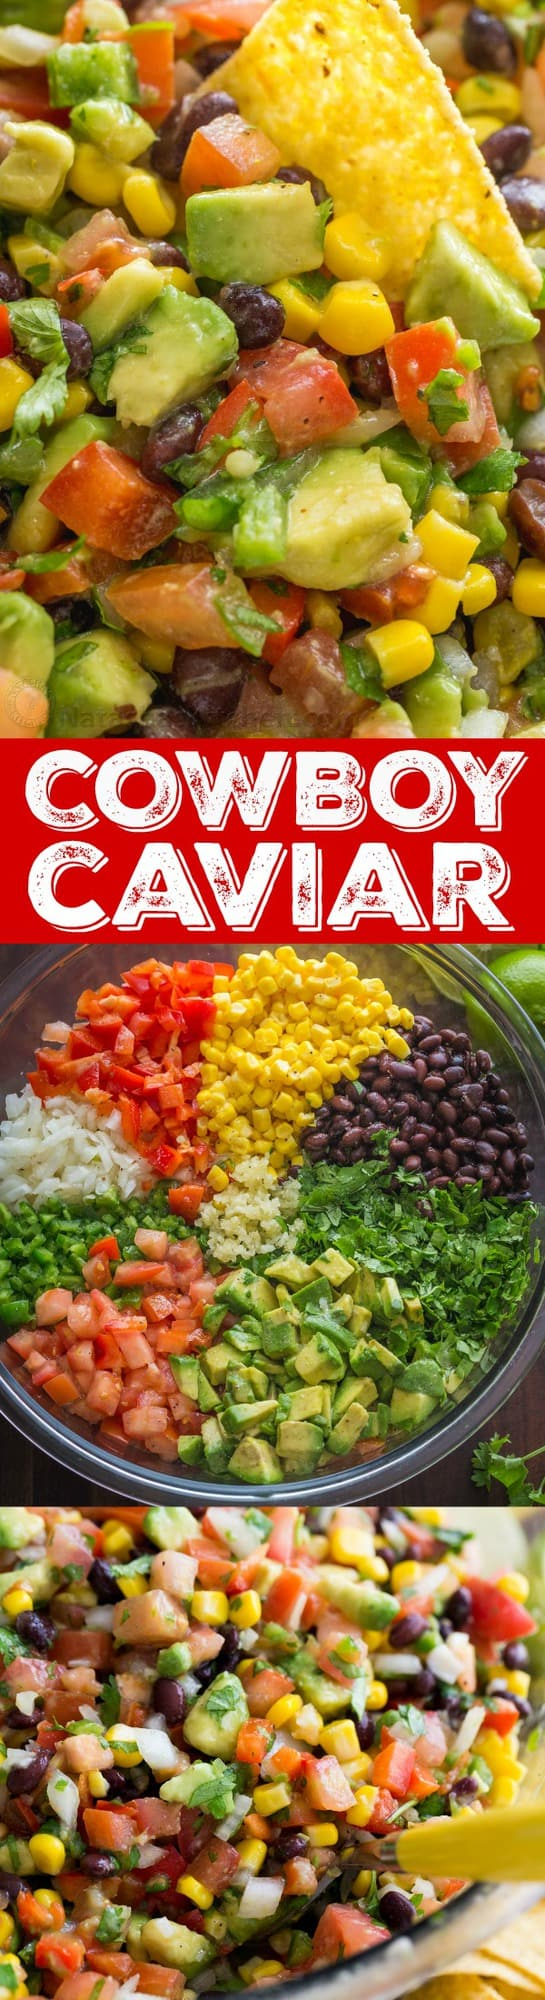 This Cowboy Caviar salsa is fresh, healthy, simple and loaded! We make this salsa all summer long. Makes a big batch so it's an ideal summer party dip. This cowboy caviar (a.k.a. Texas Caviar) always disappears fast! | natashaskitchen.com